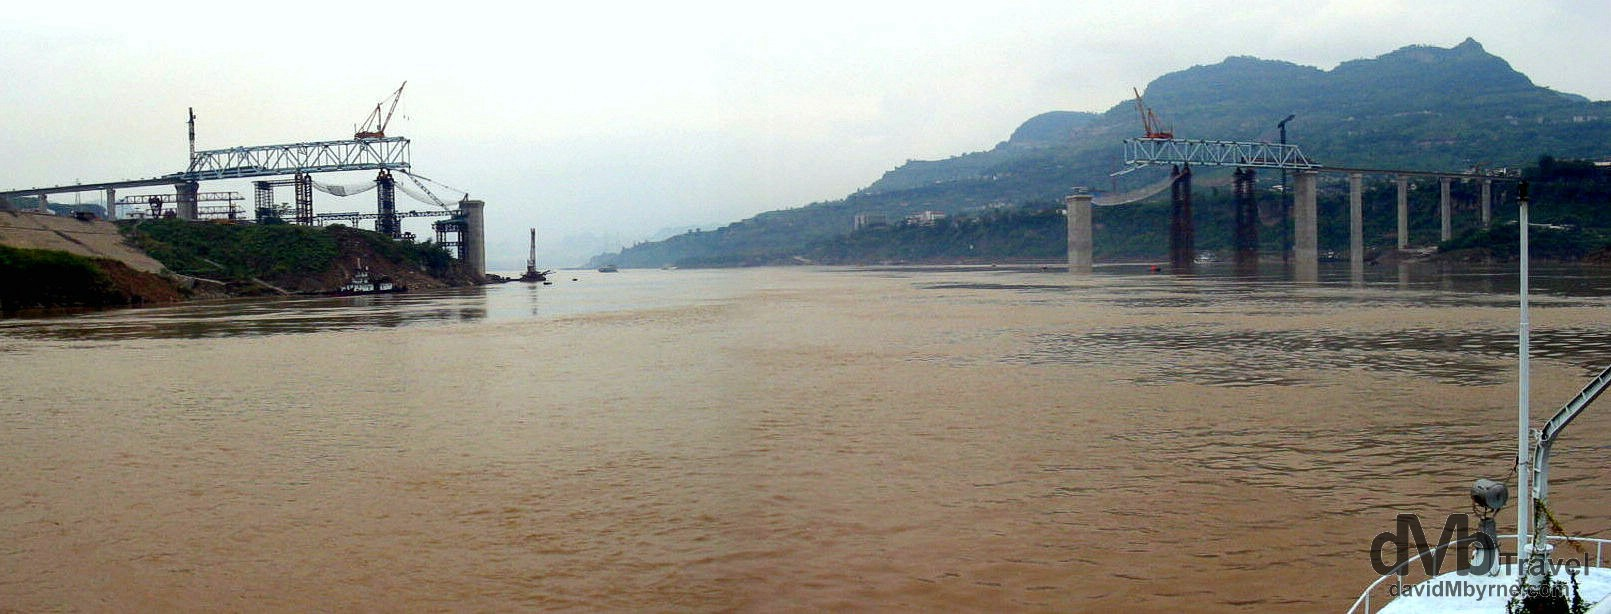 The construction of a bridge spanning the Yangtze River as seen from the river near Wan Xian, central China. September 26th, 2004.